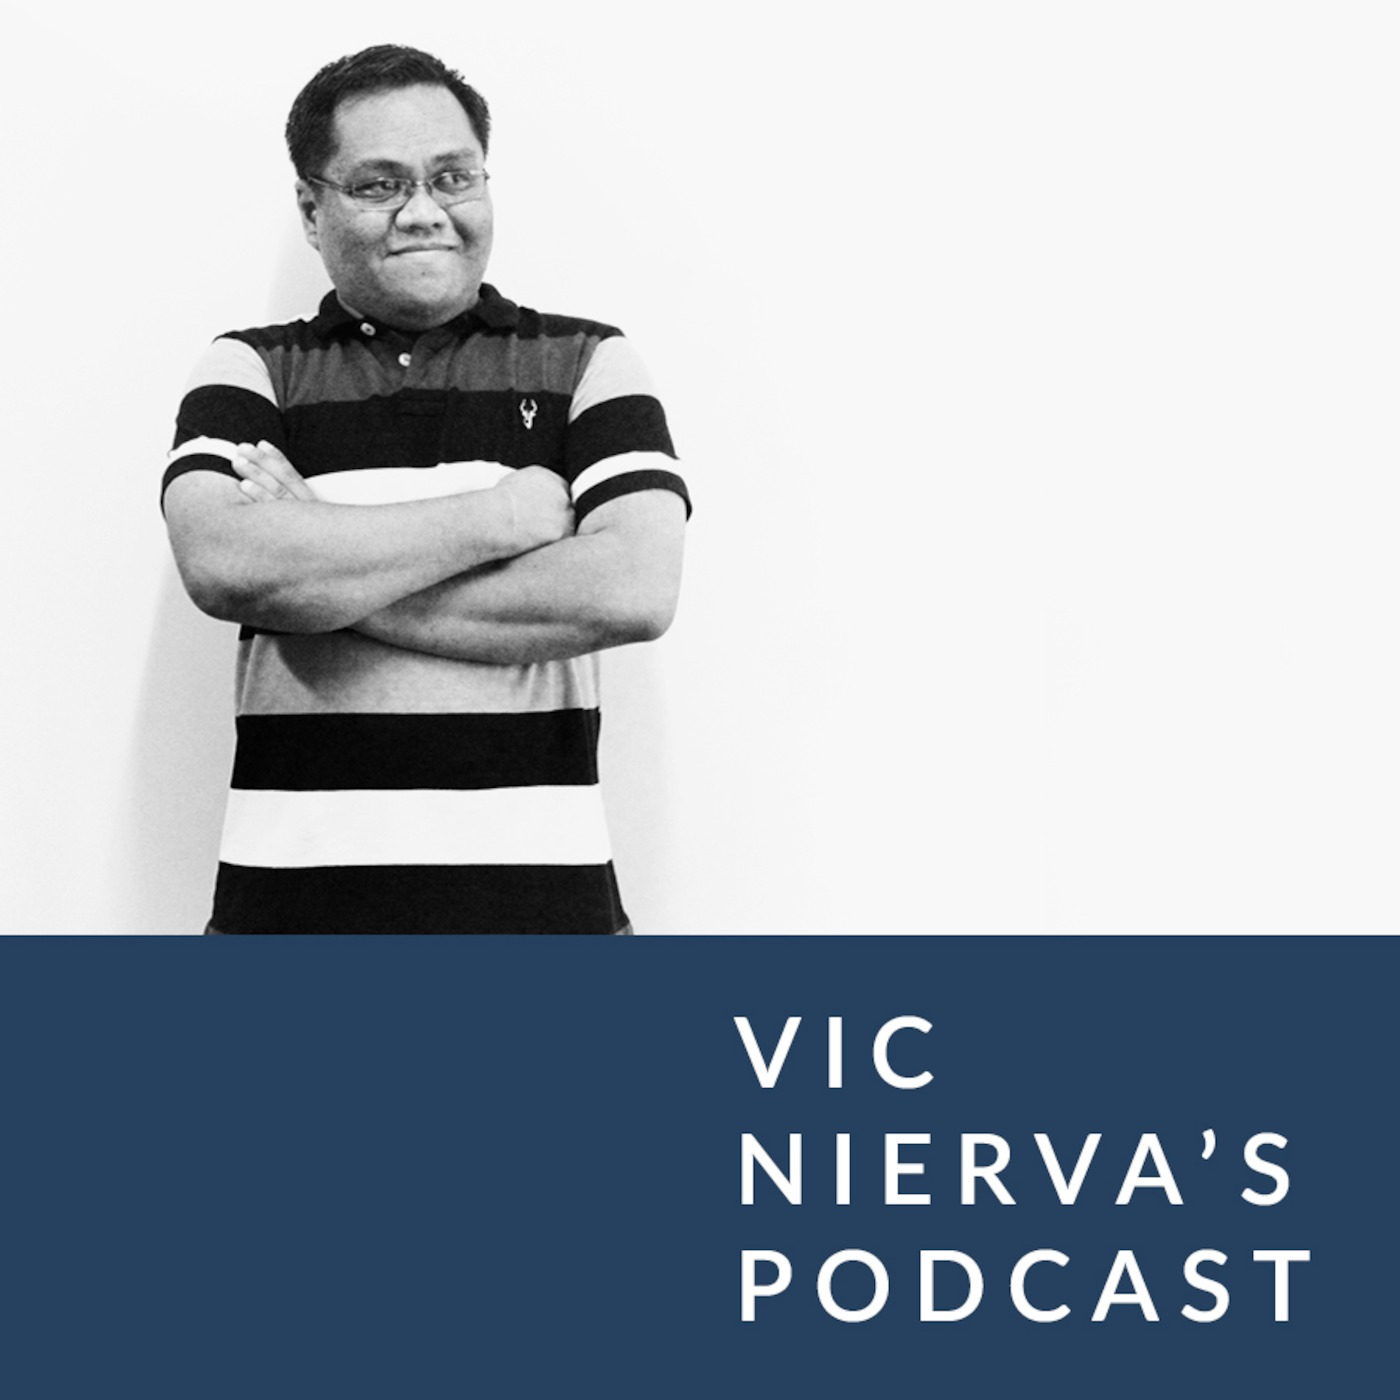 Vic Nierva's Podcast